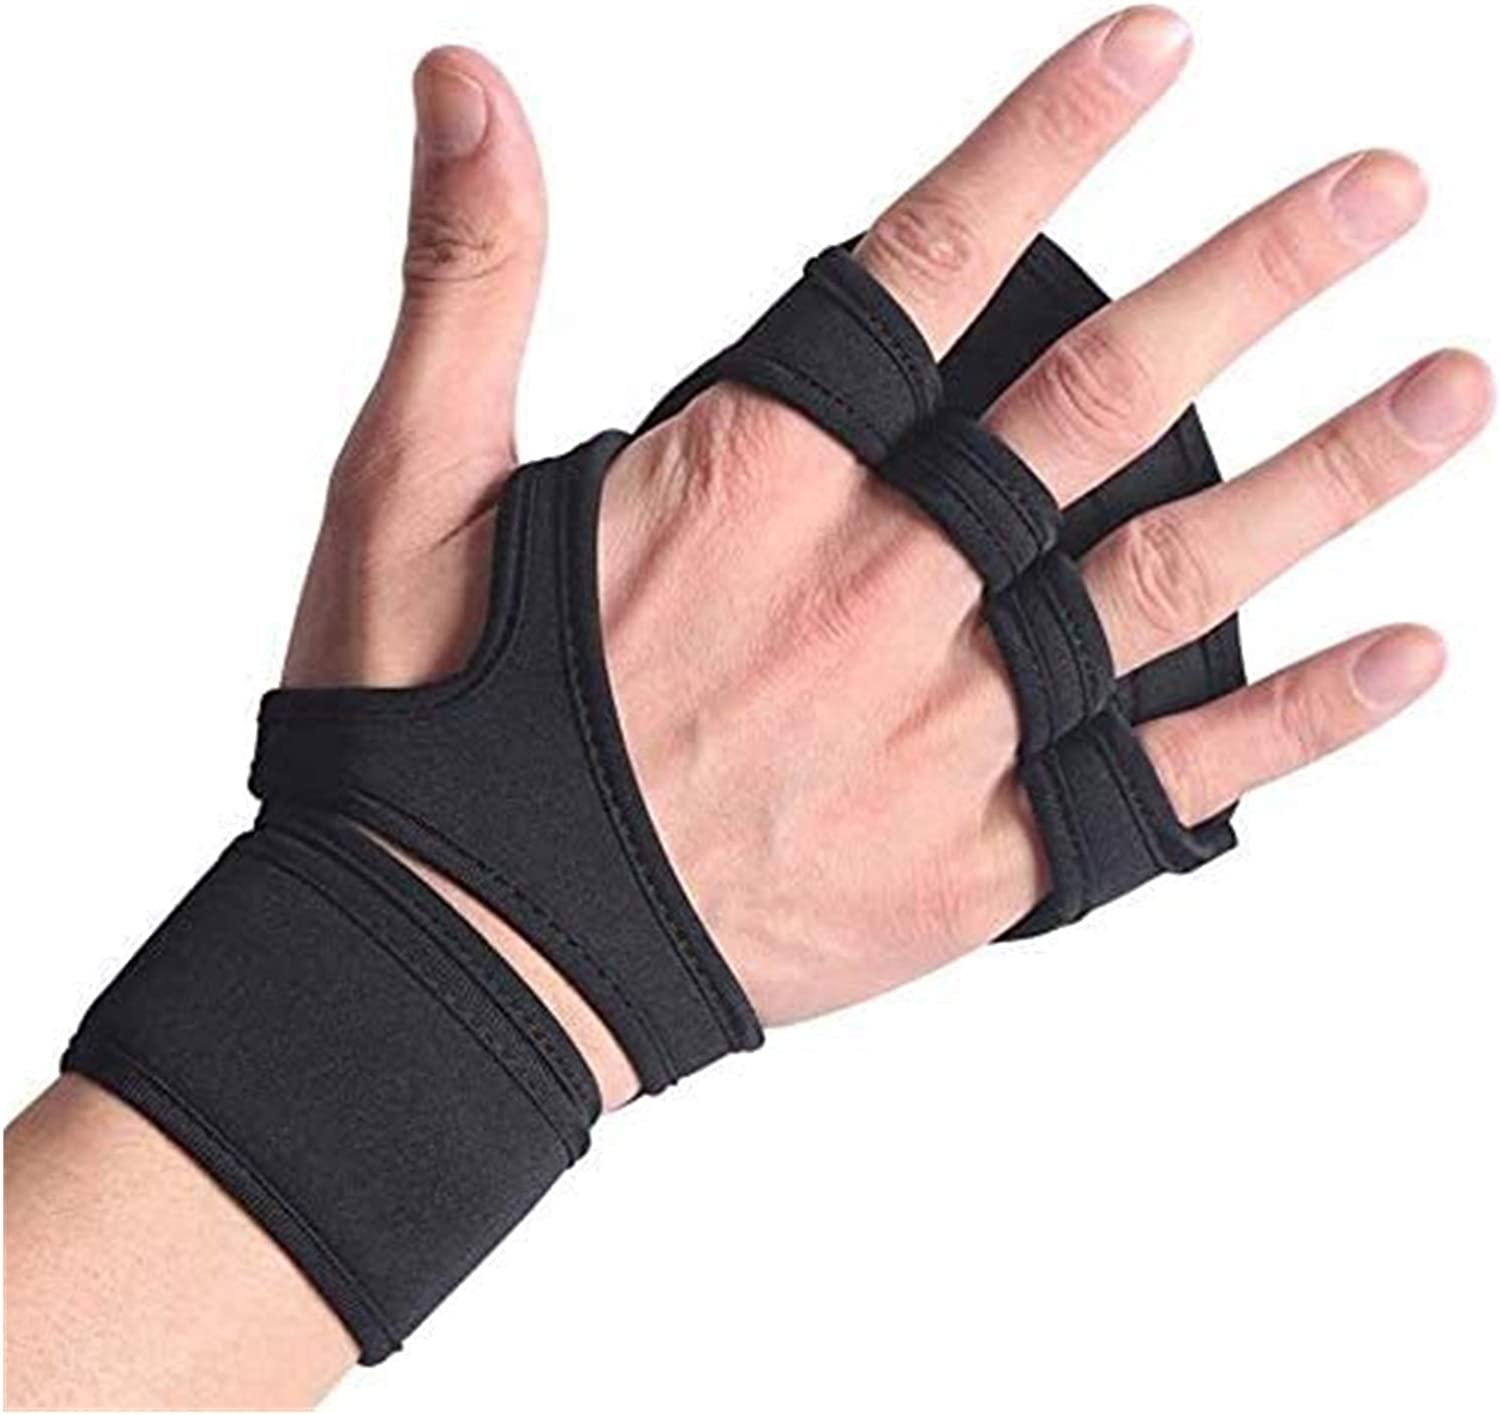 FGUD Breathable Adjustable 70% OFF Outlet Super sale Cross Training Gloves with Wrist Supp